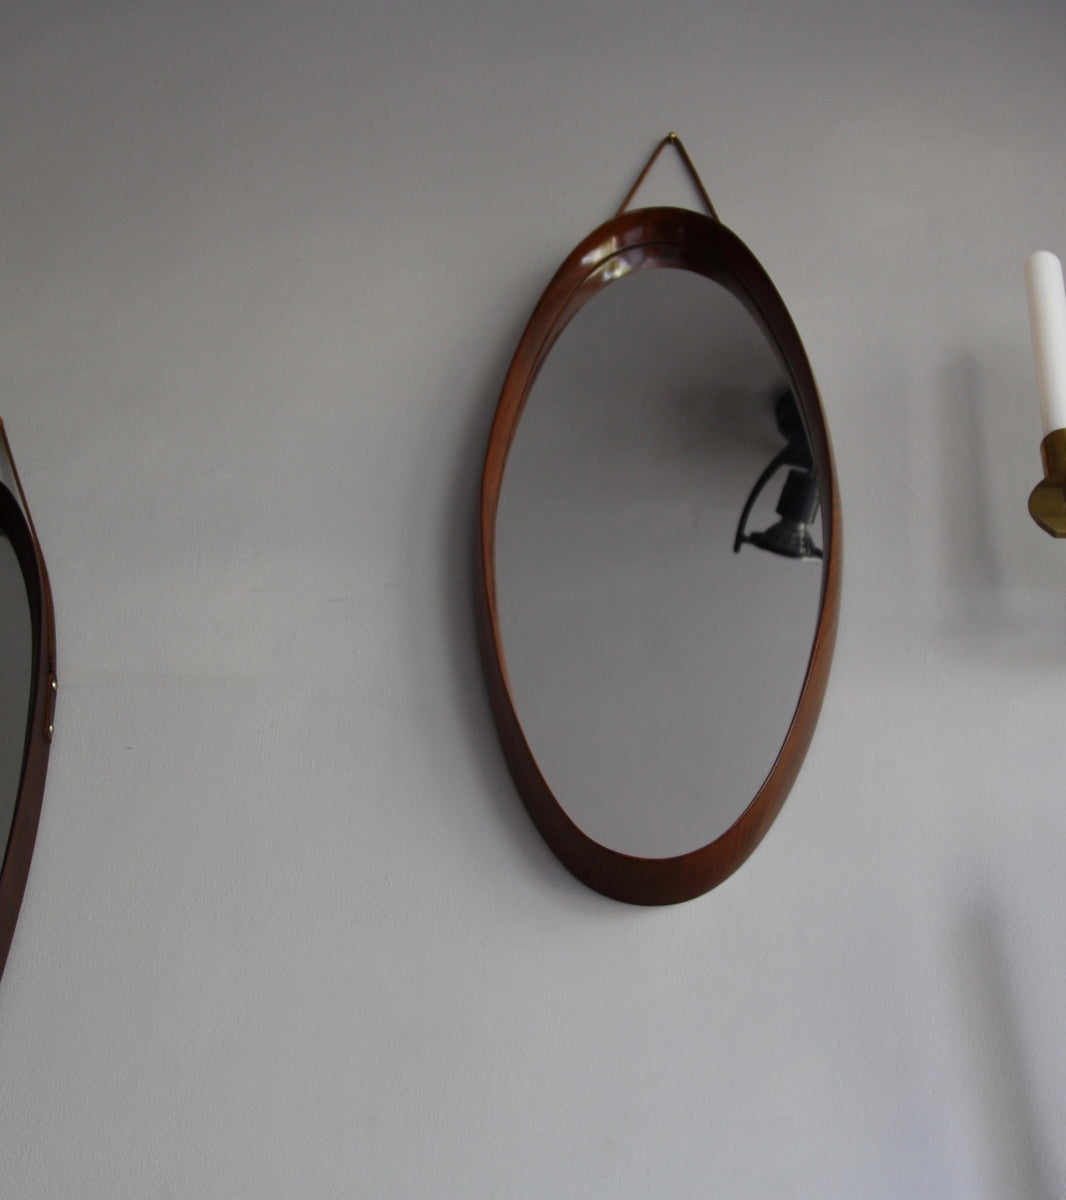 Teak Oval Mirror with Firm Leather Denmark C. 1950 - Image 8